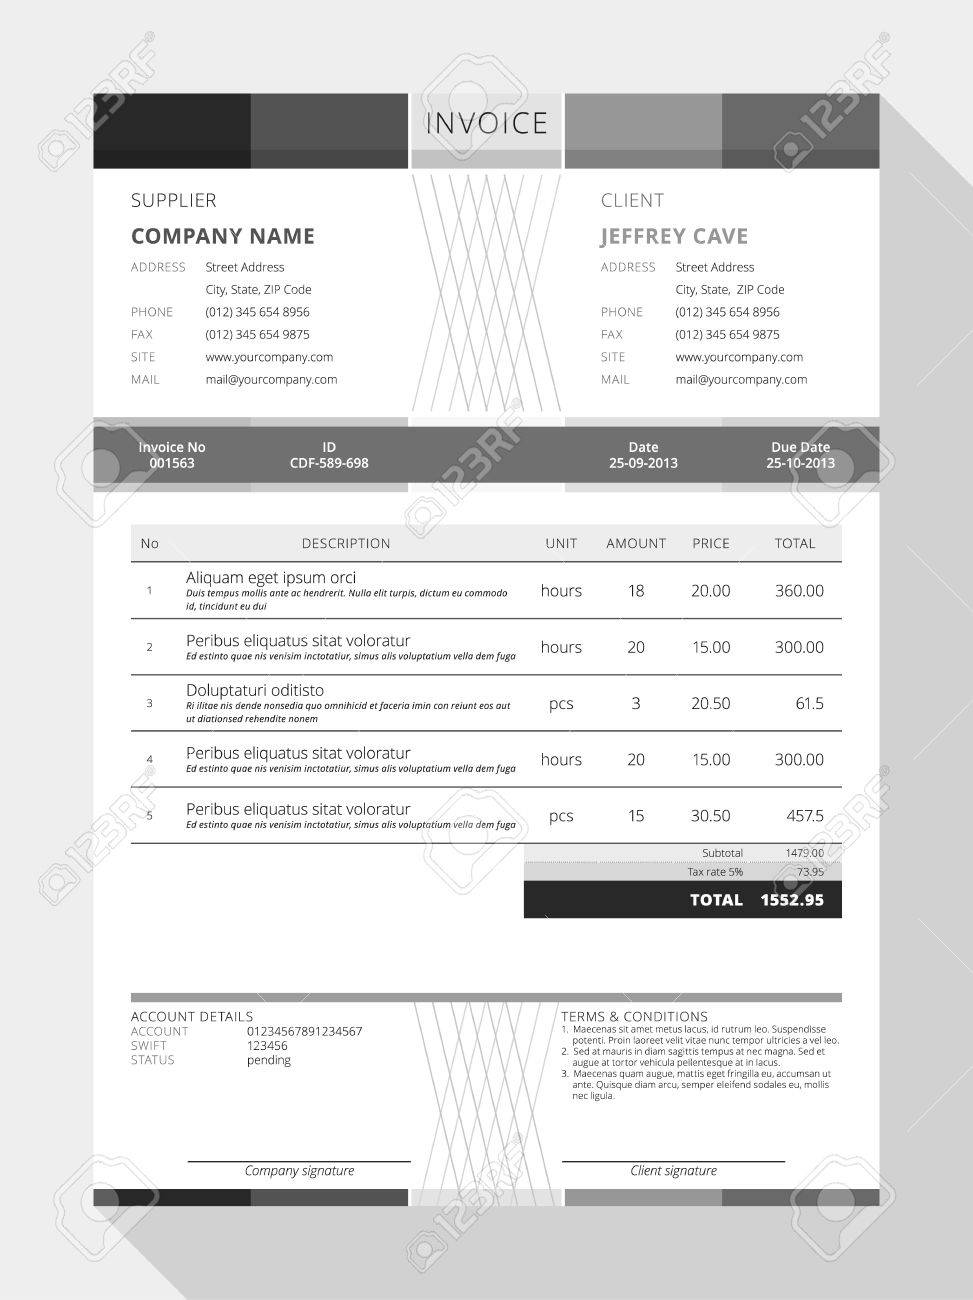 Darkfaderus  Inspiring Design An Invoice  Professional Graphic Design Invoice  With Great Vector Customizable Invoice Form Template Design Vector   Design An Invoice With Attractive Tax Receipt Template Canada Also Receipt And Release Form In Addition Saks Return Policy No Receipt And Usps Return Receipt Tracking As Well As Epson Receipt Scanner Additionally Trust Receipt Meaning From Happytomco With Darkfaderus  Great Design An Invoice  Professional Graphic Design Invoice  With Attractive Vector Customizable Invoice Form Template Design Vector   Design An Invoice And Inspiring Tax Receipt Template Canada Also Receipt And Release Form In Addition Saks Return Policy No Receipt From Happytomco